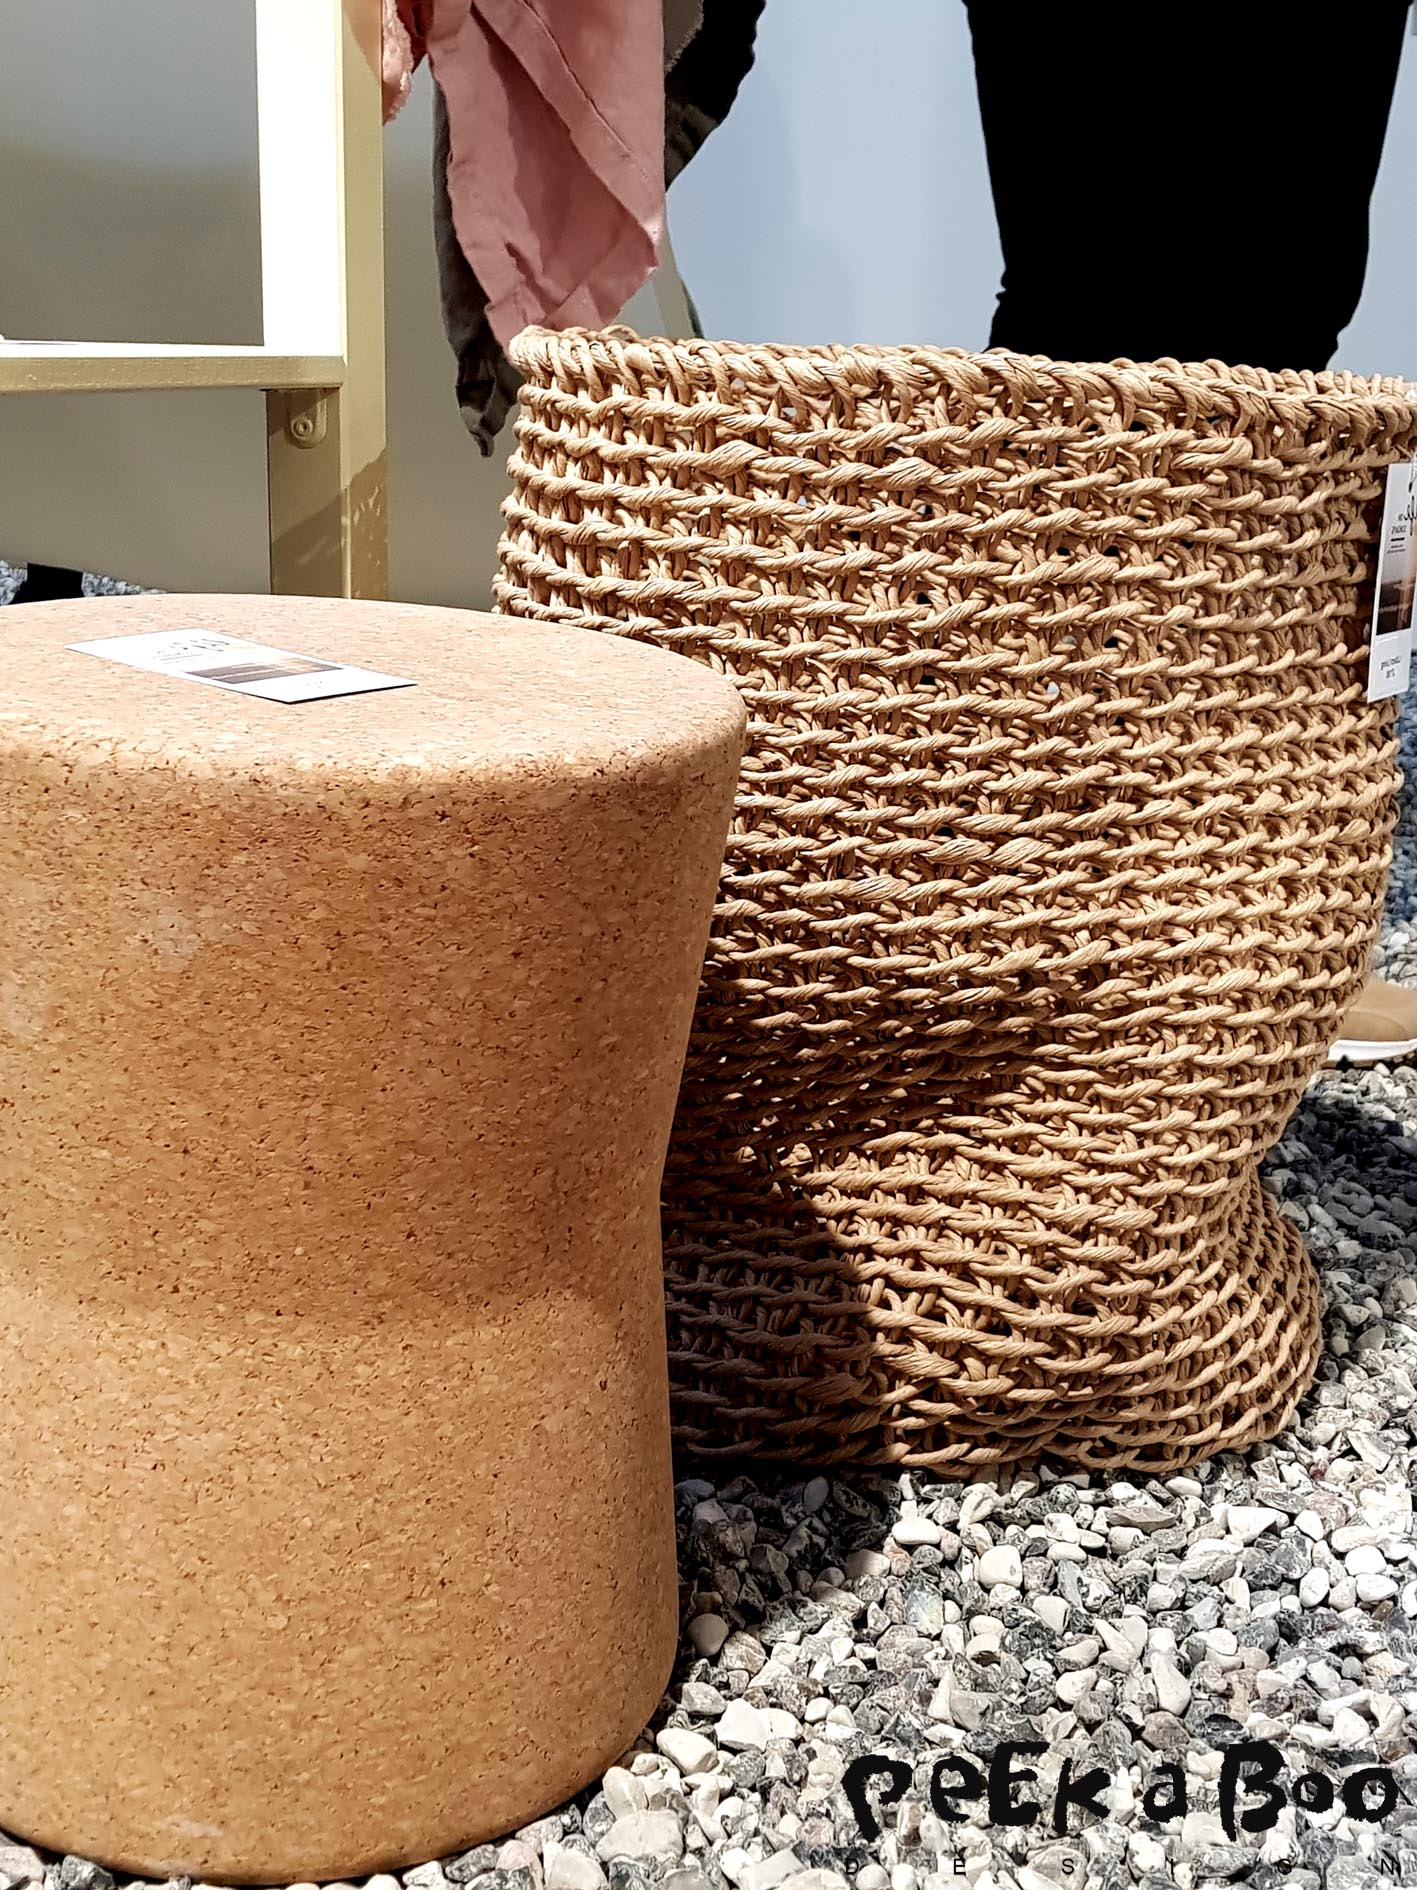 This Stool is made by the danish interior brand Oyoy. You can make all kind of 3D shapes in cork. We have seen bathtubs, chairs and a lot of other things made entirely in cork.